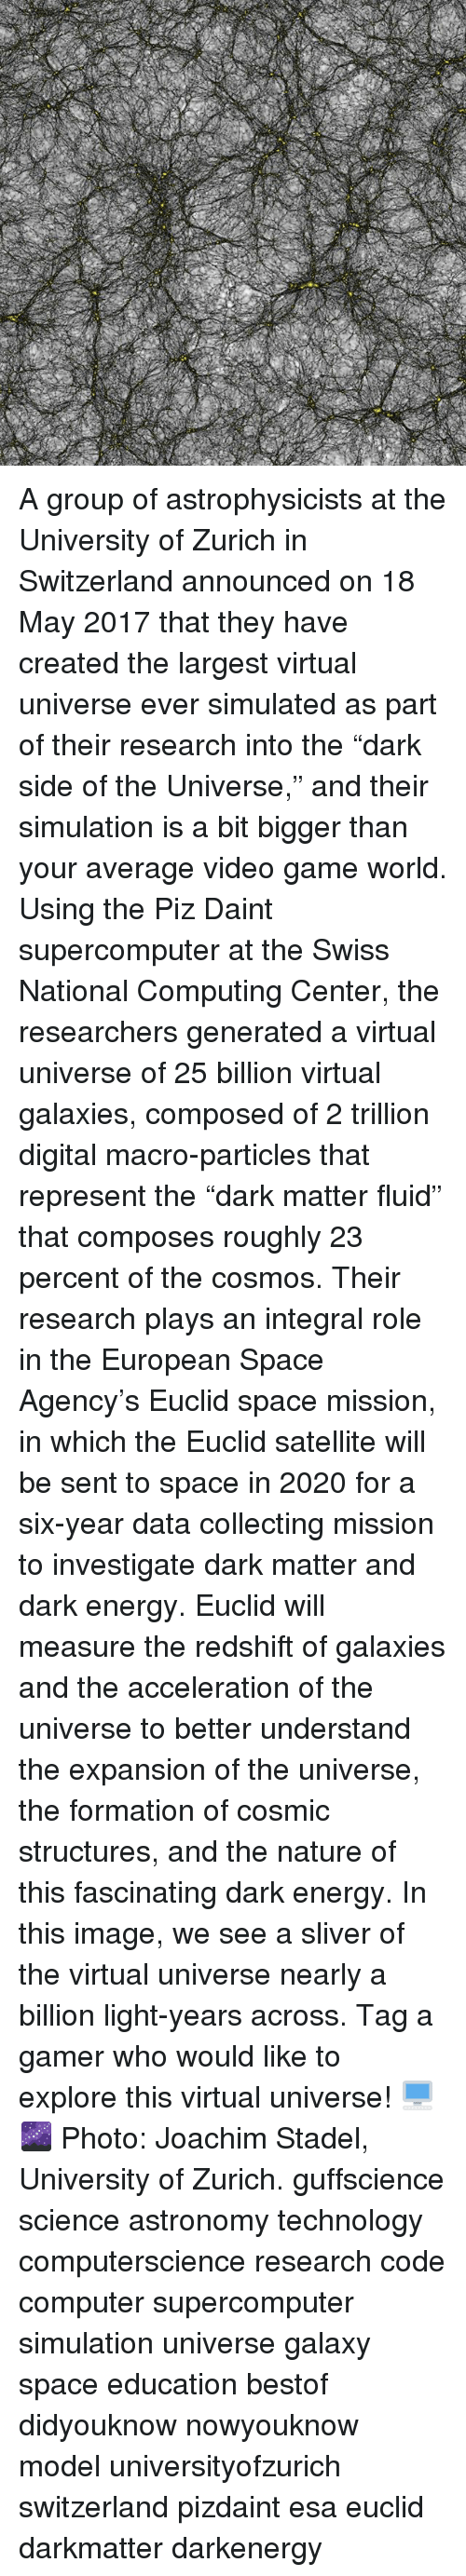 """computing: A group of astrophysicists at the University of Zurich in Switzerland announced on 18 May 2017 that they have created the largest virtual universe ever simulated as part of their research into the """"dark side of the Universe,"""" and their simulation is a bit bigger than your average video game world. Using the Piz Daint supercomputer at the Swiss National Computing Center, the researchers generated a virtual universe of 25 billion virtual galaxies, composed of 2 trillion digital macro-particles that represent the """"dark matter fluid"""" that composes roughly 23 percent of the cosmos. Their research plays an integral role in the European Space Agency's Euclid space mission, in which the Euclid satellite will be sent to space in 2020 for a six-year data collecting mission to investigate dark matter and dark energy. Euclid will measure the redshift of galaxies and the acceleration of the universe to better understand the expansion of the universe, the formation of cosmic structures, and the nature of this fascinating dark energy. In this image, we see a sliver of the virtual universe nearly a billion light-years across. Tag a gamer who would like to explore this virtual universe! 🖥️🌌 Photo: Joachim Stadel, University of Zurich. guffscience science astronomy technology computerscience research code computer supercomputer simulation universe galaxy space education bestof didyouknow nowyouknow model universityofzurich switzerland pizdaint esa euclid darkmatter darkenergy"""